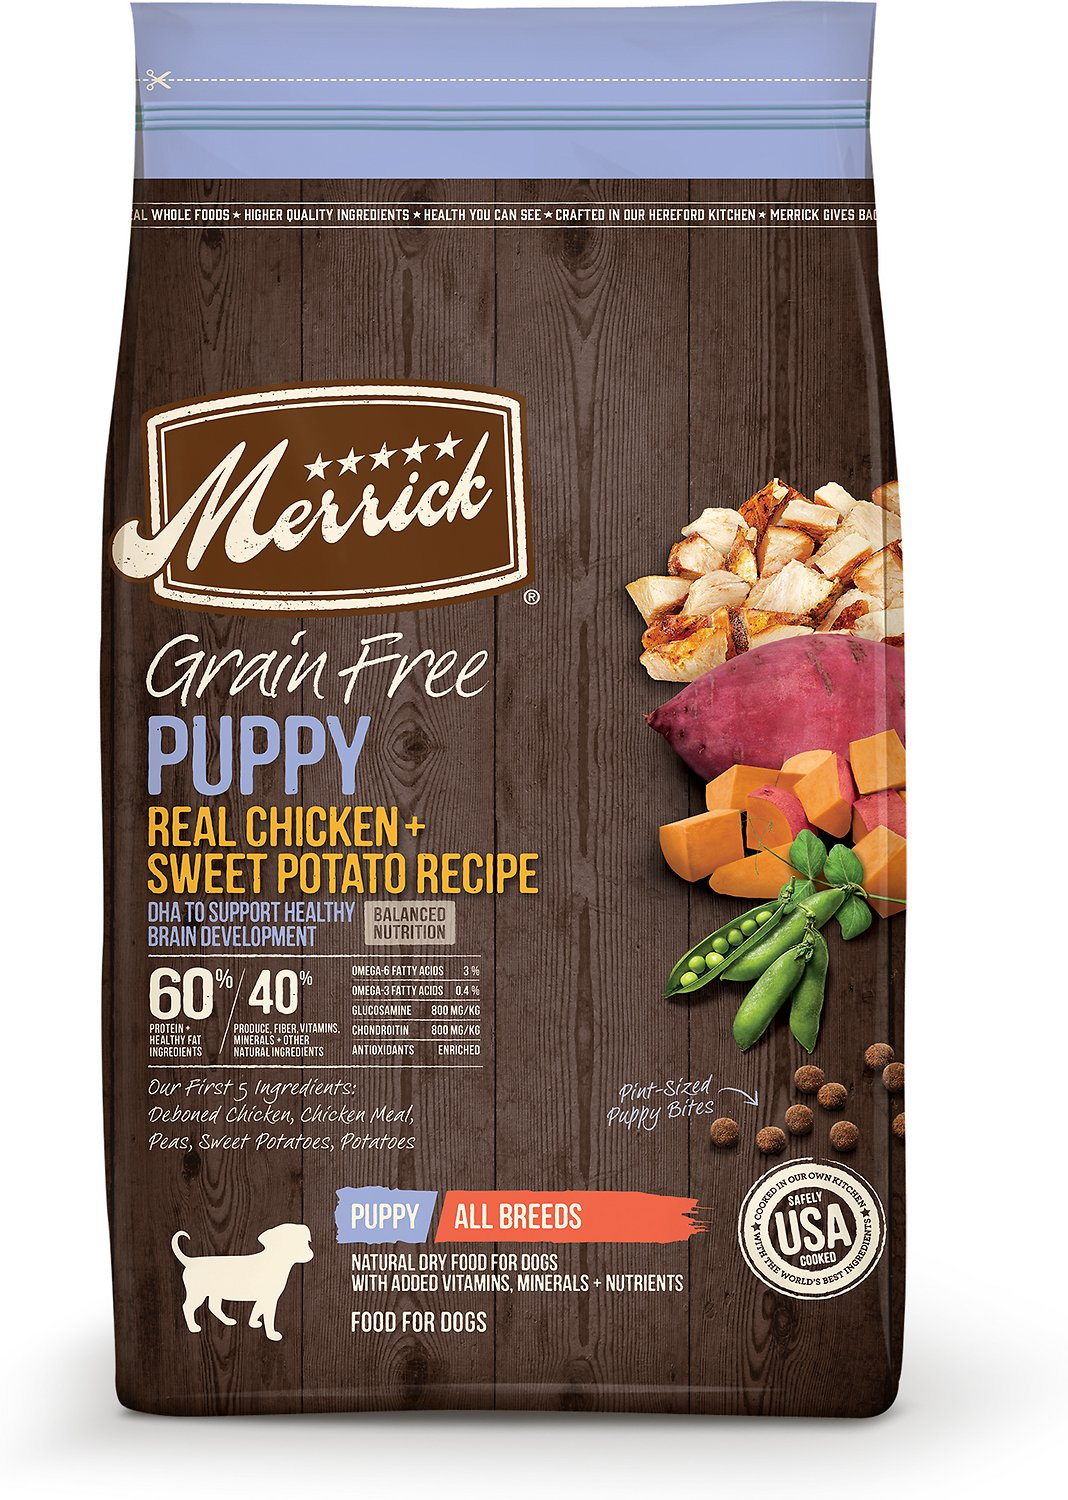 Merrick Grain-Free Puppy Real Chicken & Sweet Potato Recipe Dry Dog Food Image